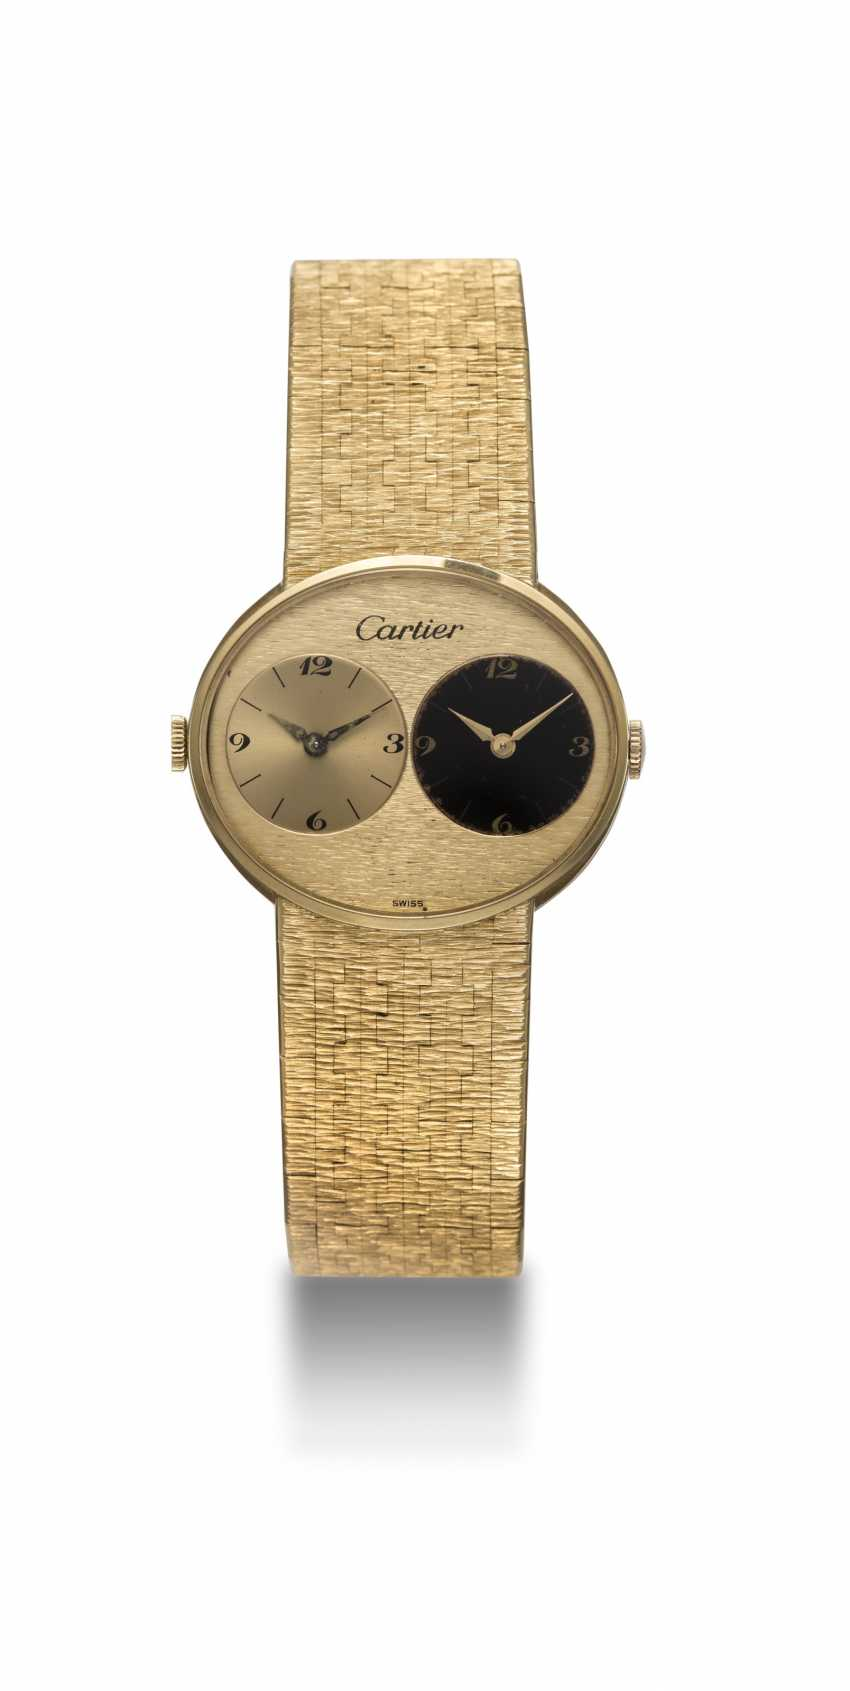 PIAGET, A GOLD DUAL TIME BRACELET WATCH RETAILED BY CARTIER - photo 3